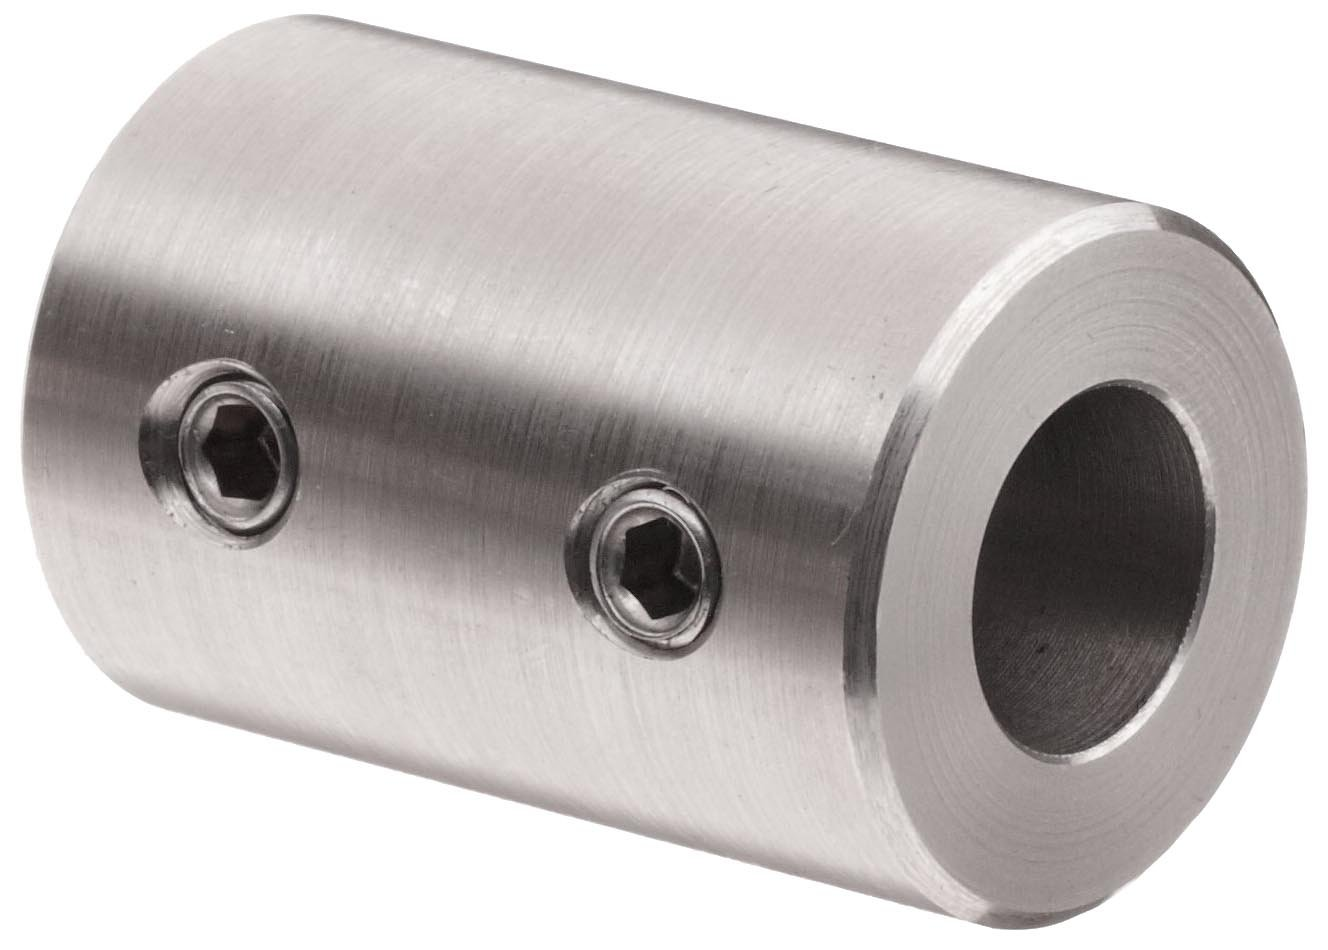 0.750 Bore Boston Gear CR16 Shaft Coupling One Piece Type 3.000 Overall Length Rigid 2.000 Outside Diameter